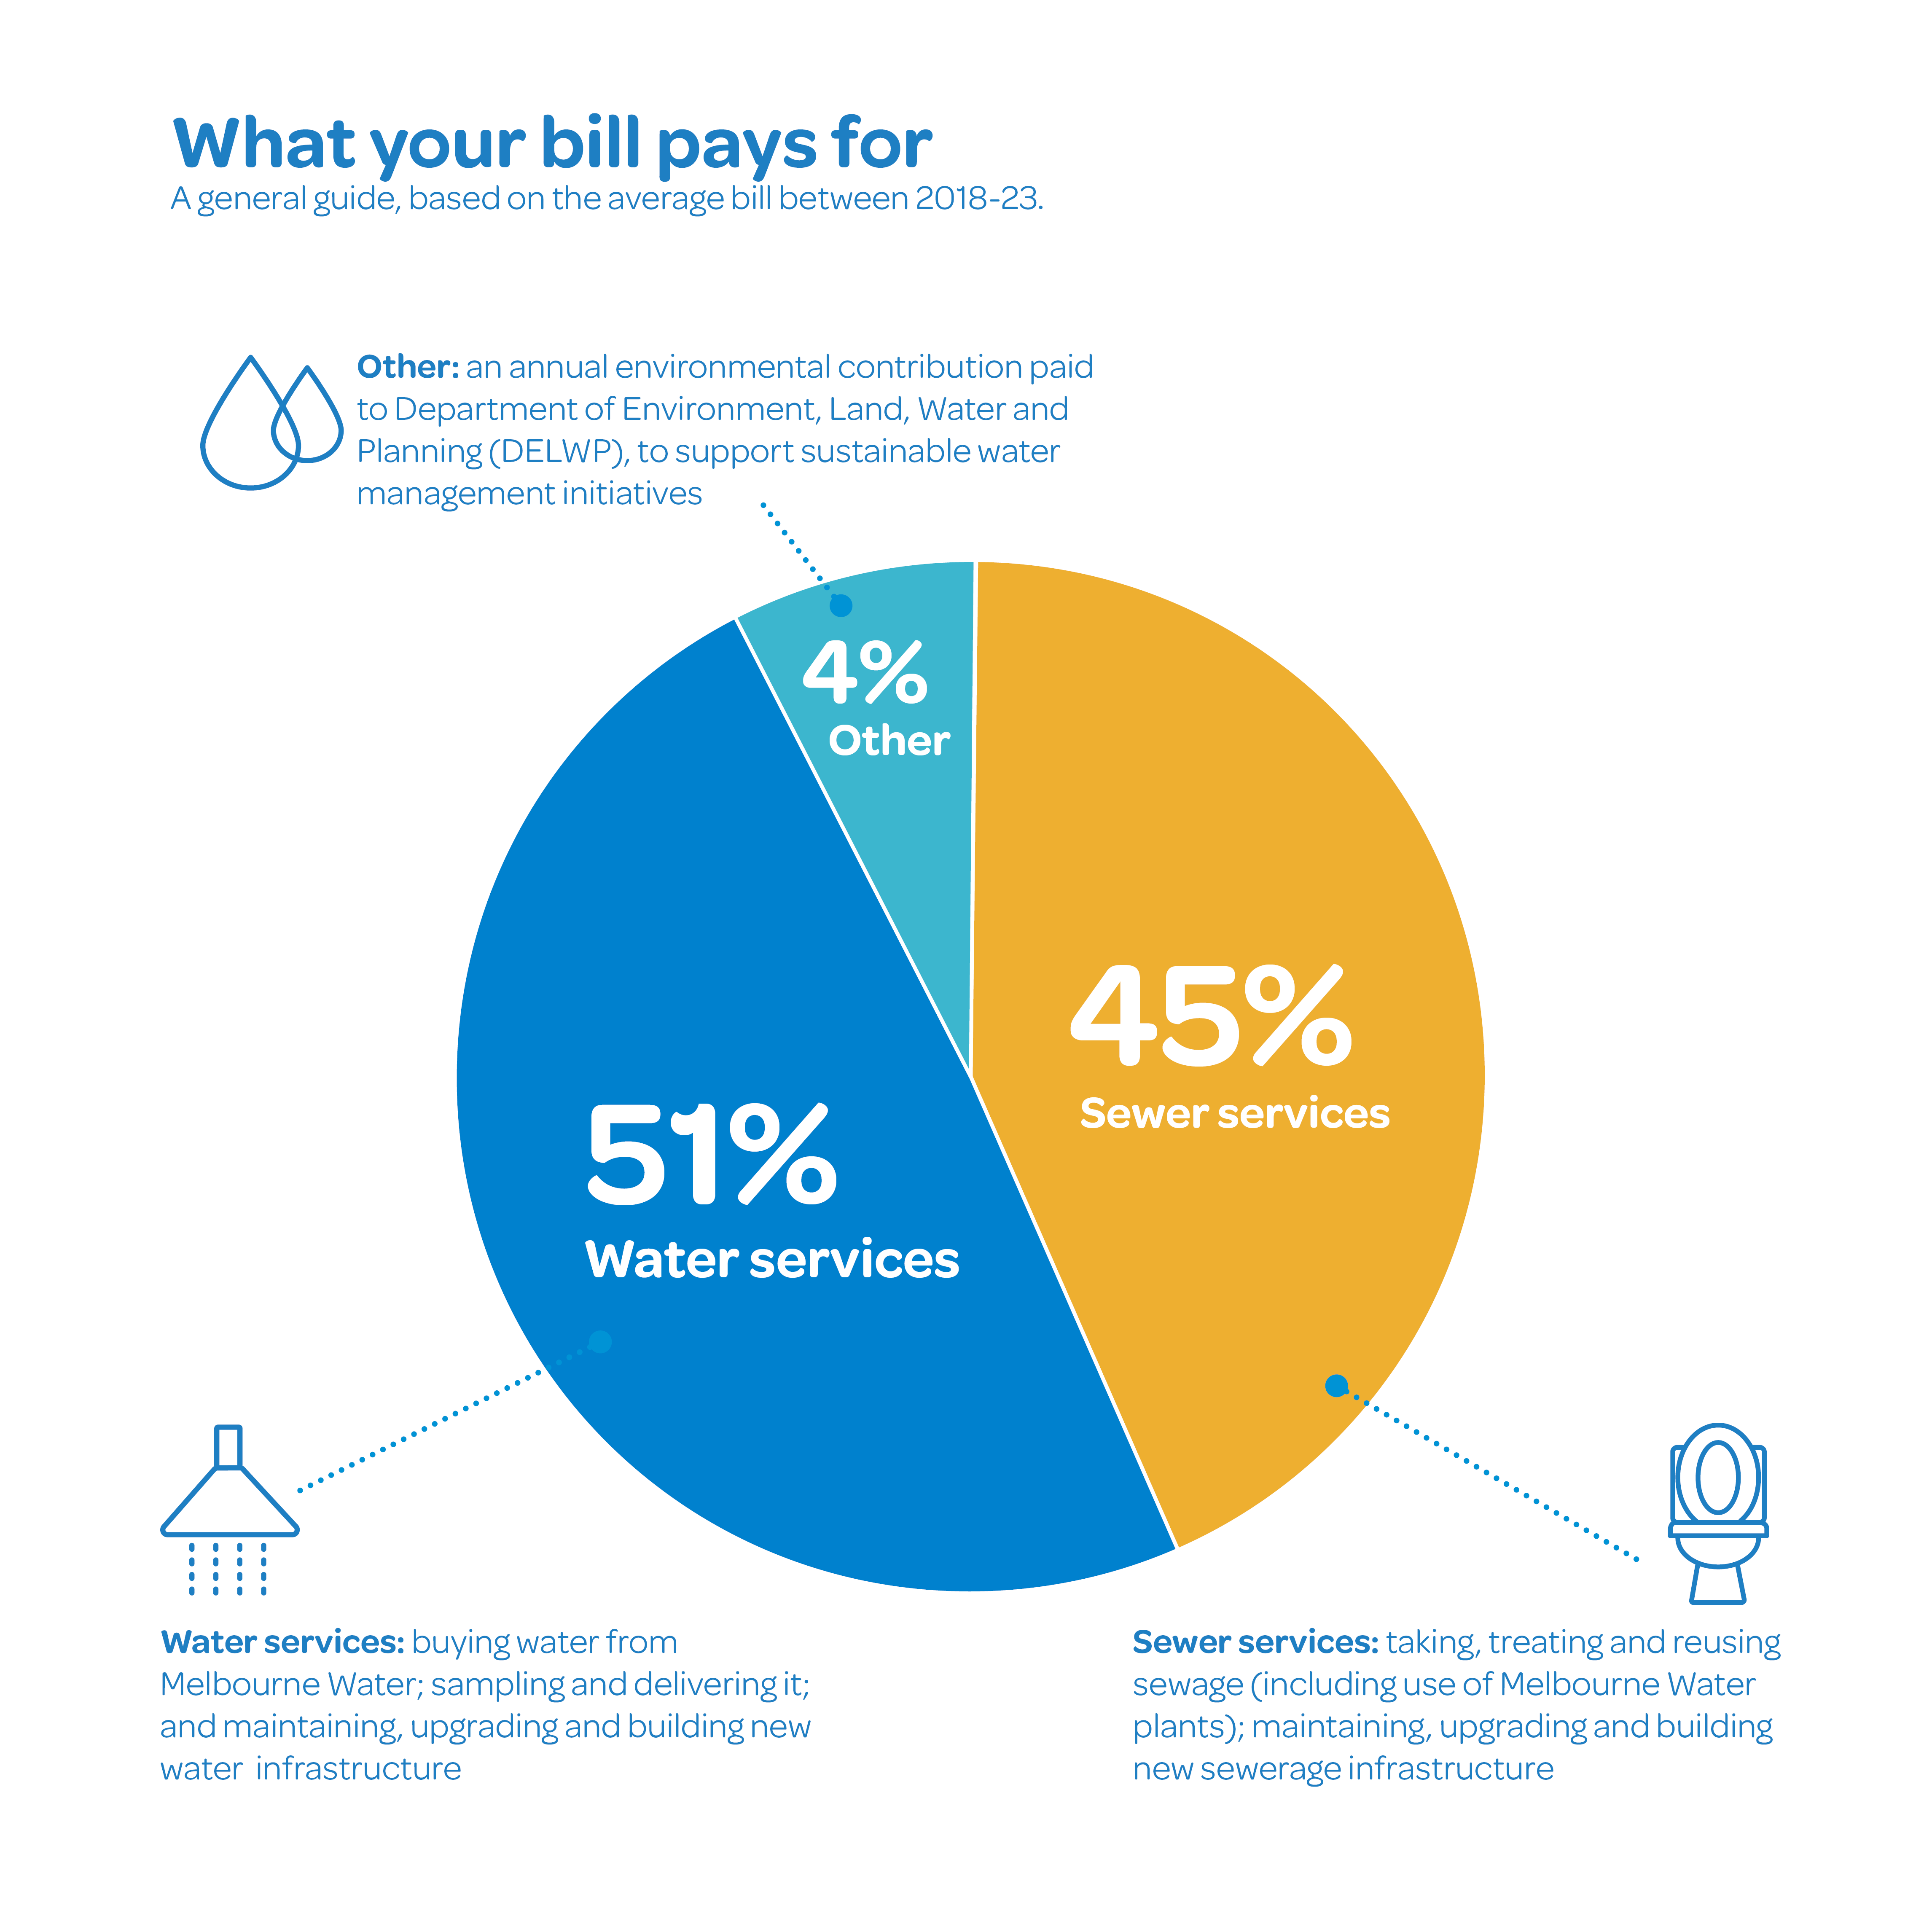 51% of your bill goes towards water services, 45% towards sewer services and 4% to support sustainable water management initiatives